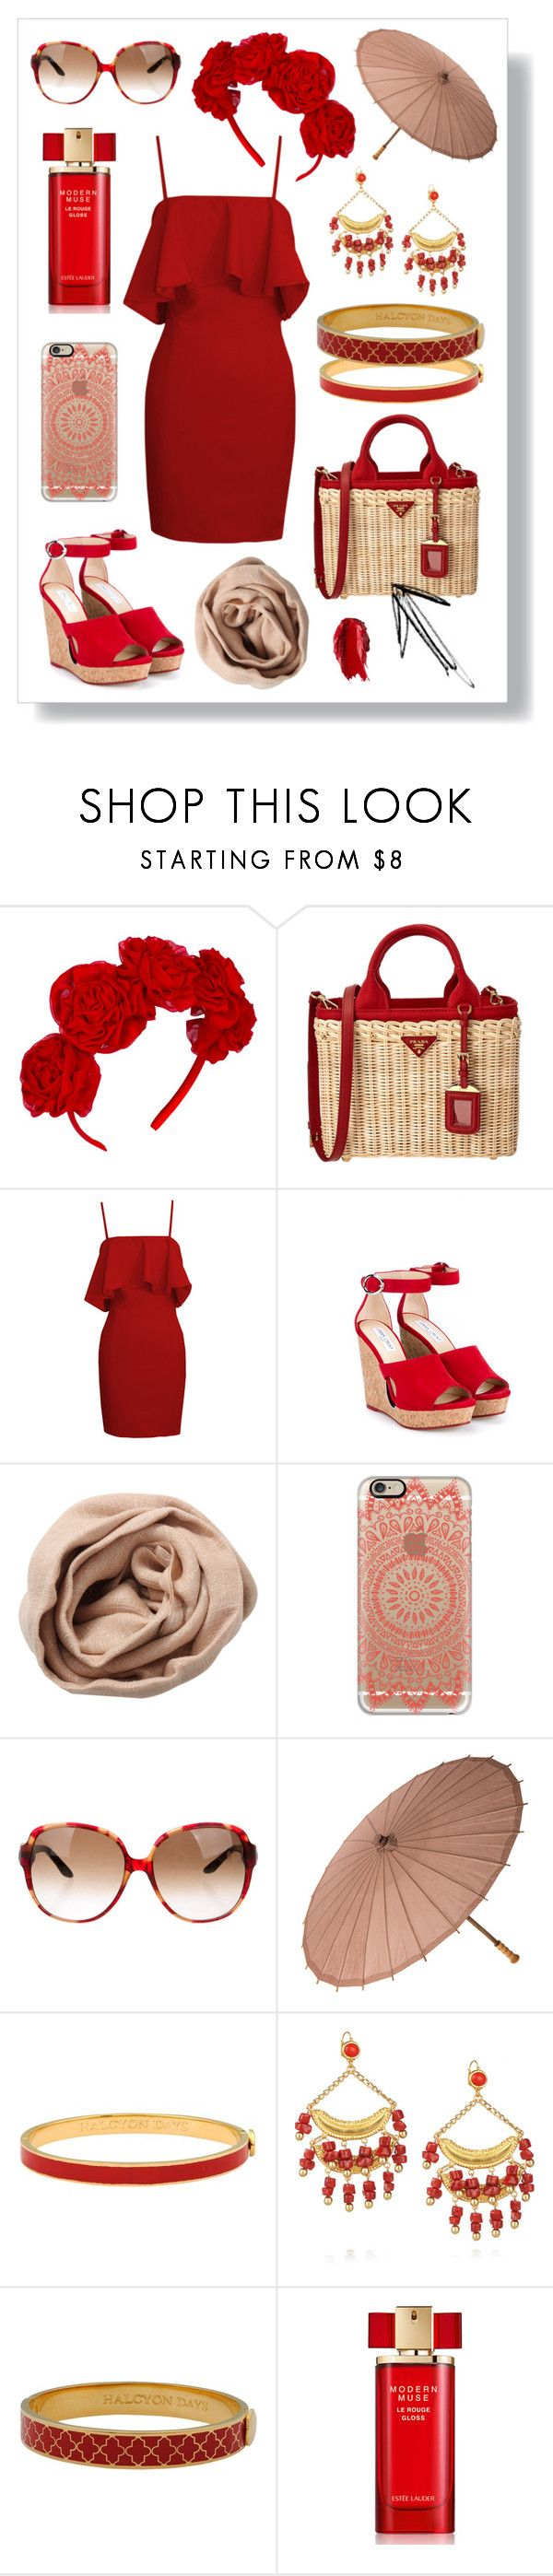 N° 99   Featured Piece: TOTE BAG by #yellowyippie on Polyvore featuring Mode, Vjera Vilicnik, Prada, Jimmy Choo, Brunello Cucinelli, Casetify, Christian Dior, Halcyon Days, Kenneth Jay Lane und Estée Lauder #yellowyippie  #ootd  #getthelook  #polyvore  #fashion #featuredpiece #chic #red #beige #canvas #woody #partystyle #summerstyle #holidaychic #ruffle